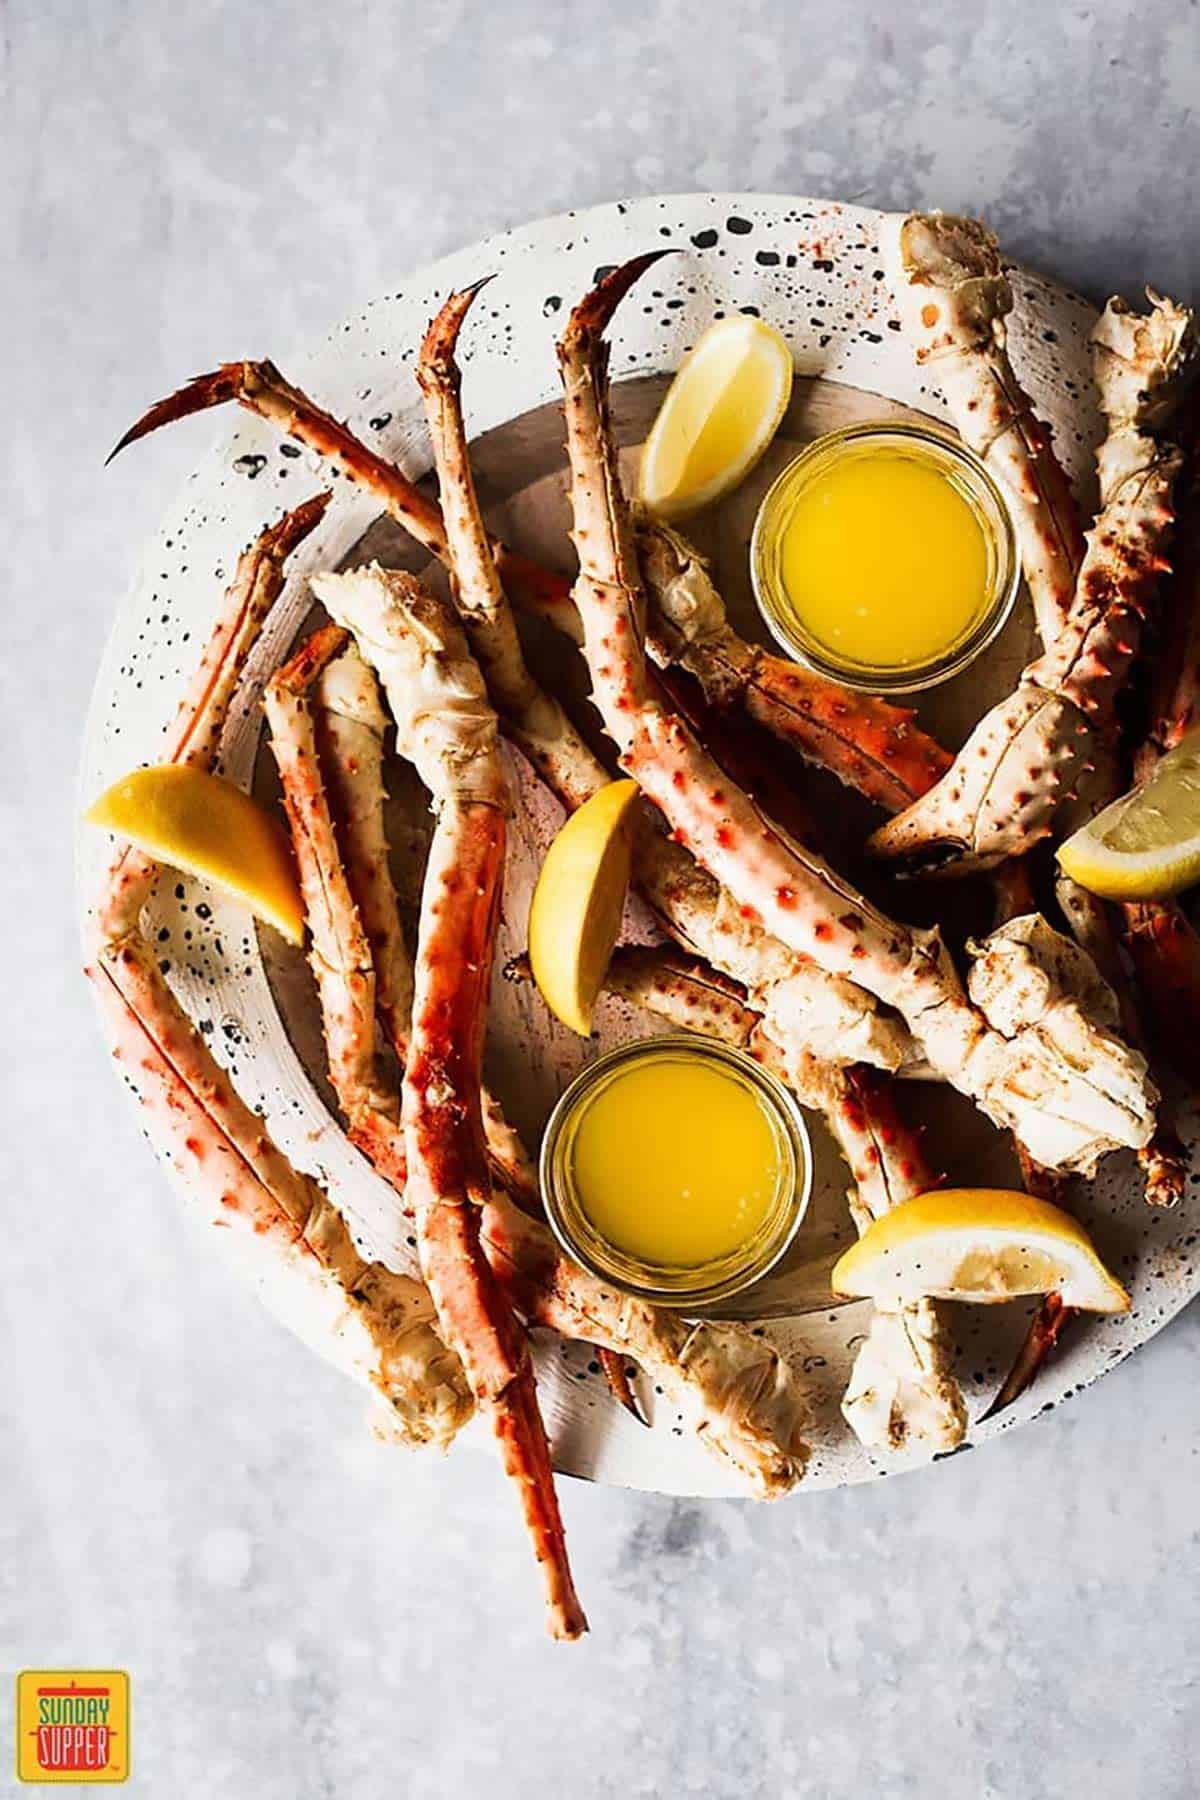 Steamed crab legs on a speckled white plate with lemon garlic butter sauce in dishes